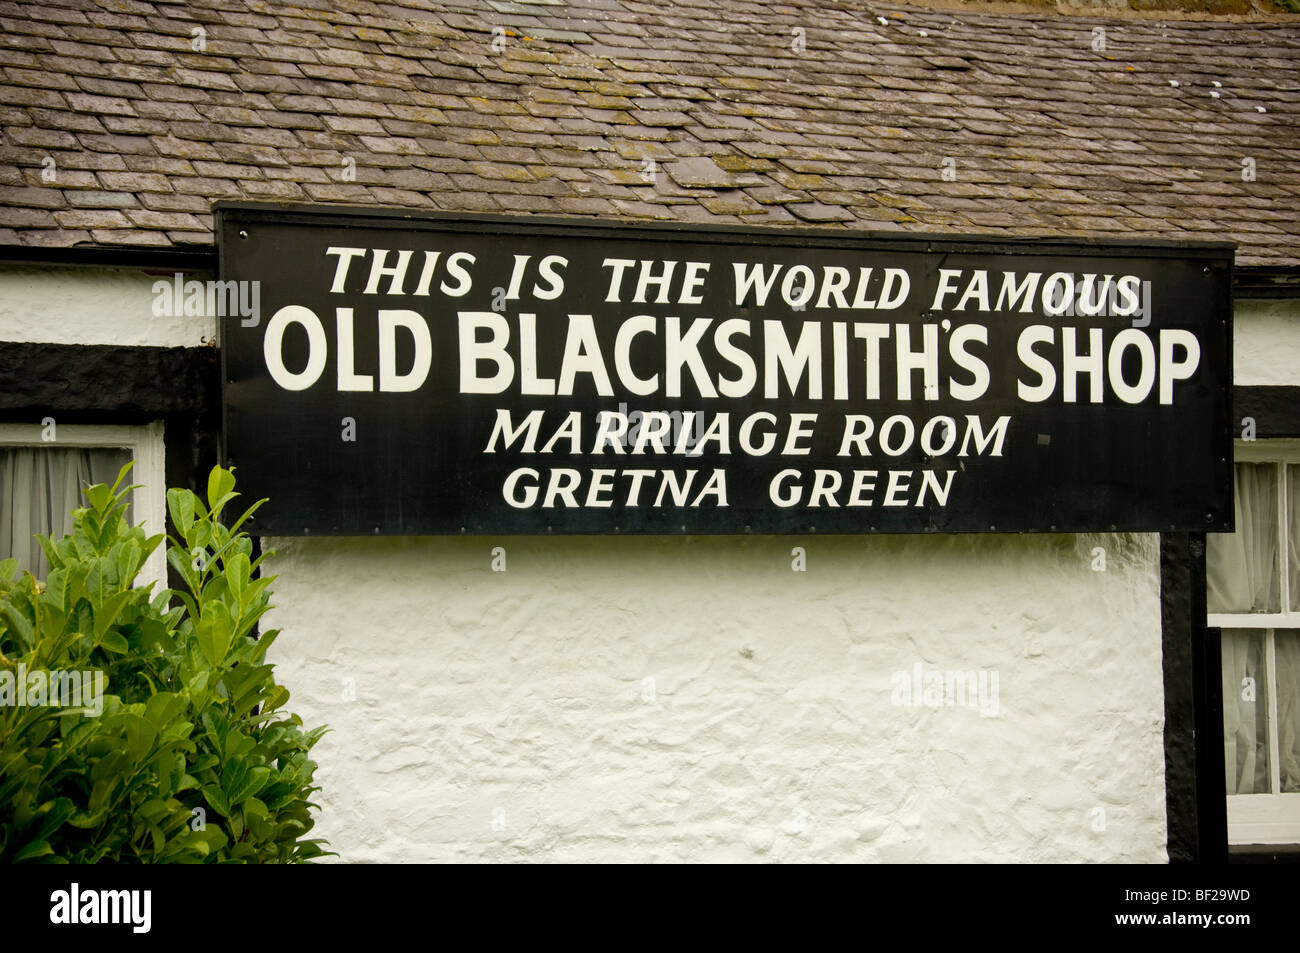 the old blacksmiths shop stock photos the old blacksmiths shop stock images alamy. Black Bedroom Furniture Sets. Home Design Ideas